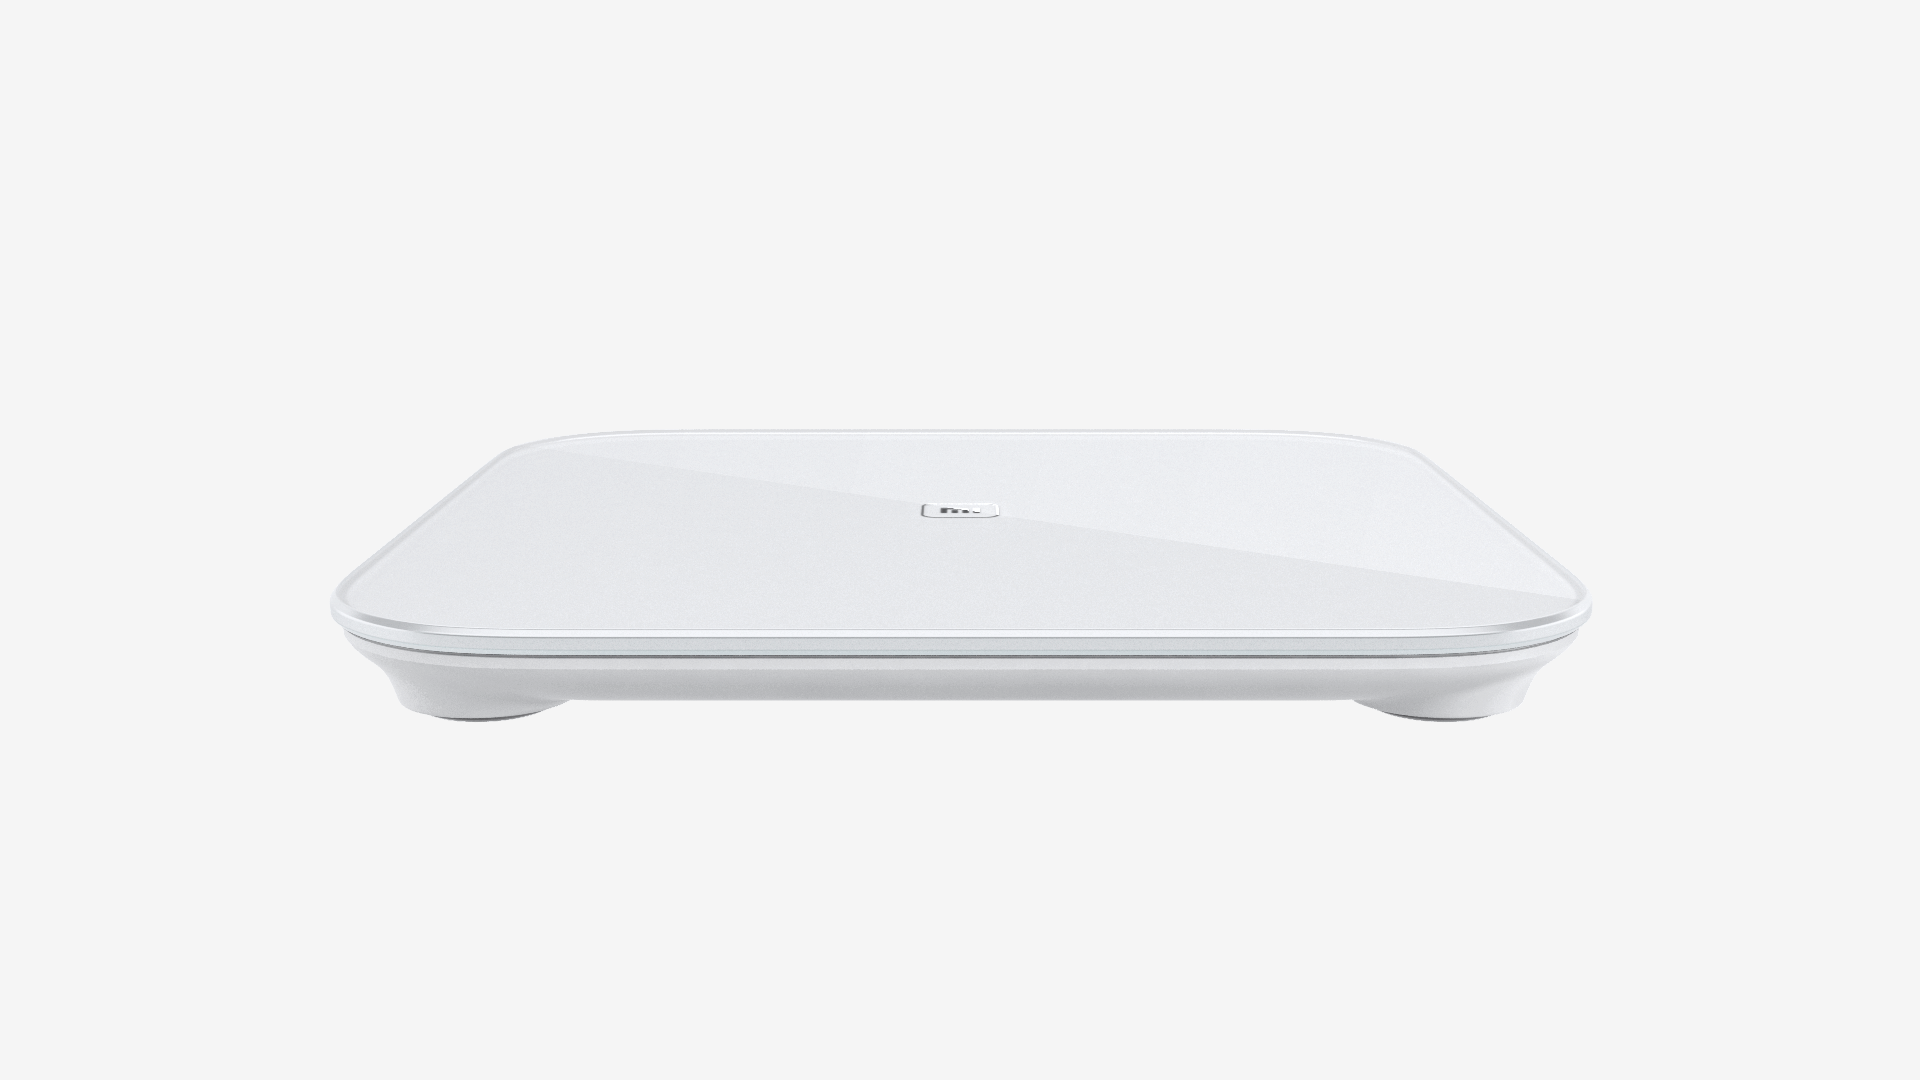 XiaoMi Digital Smart Scale